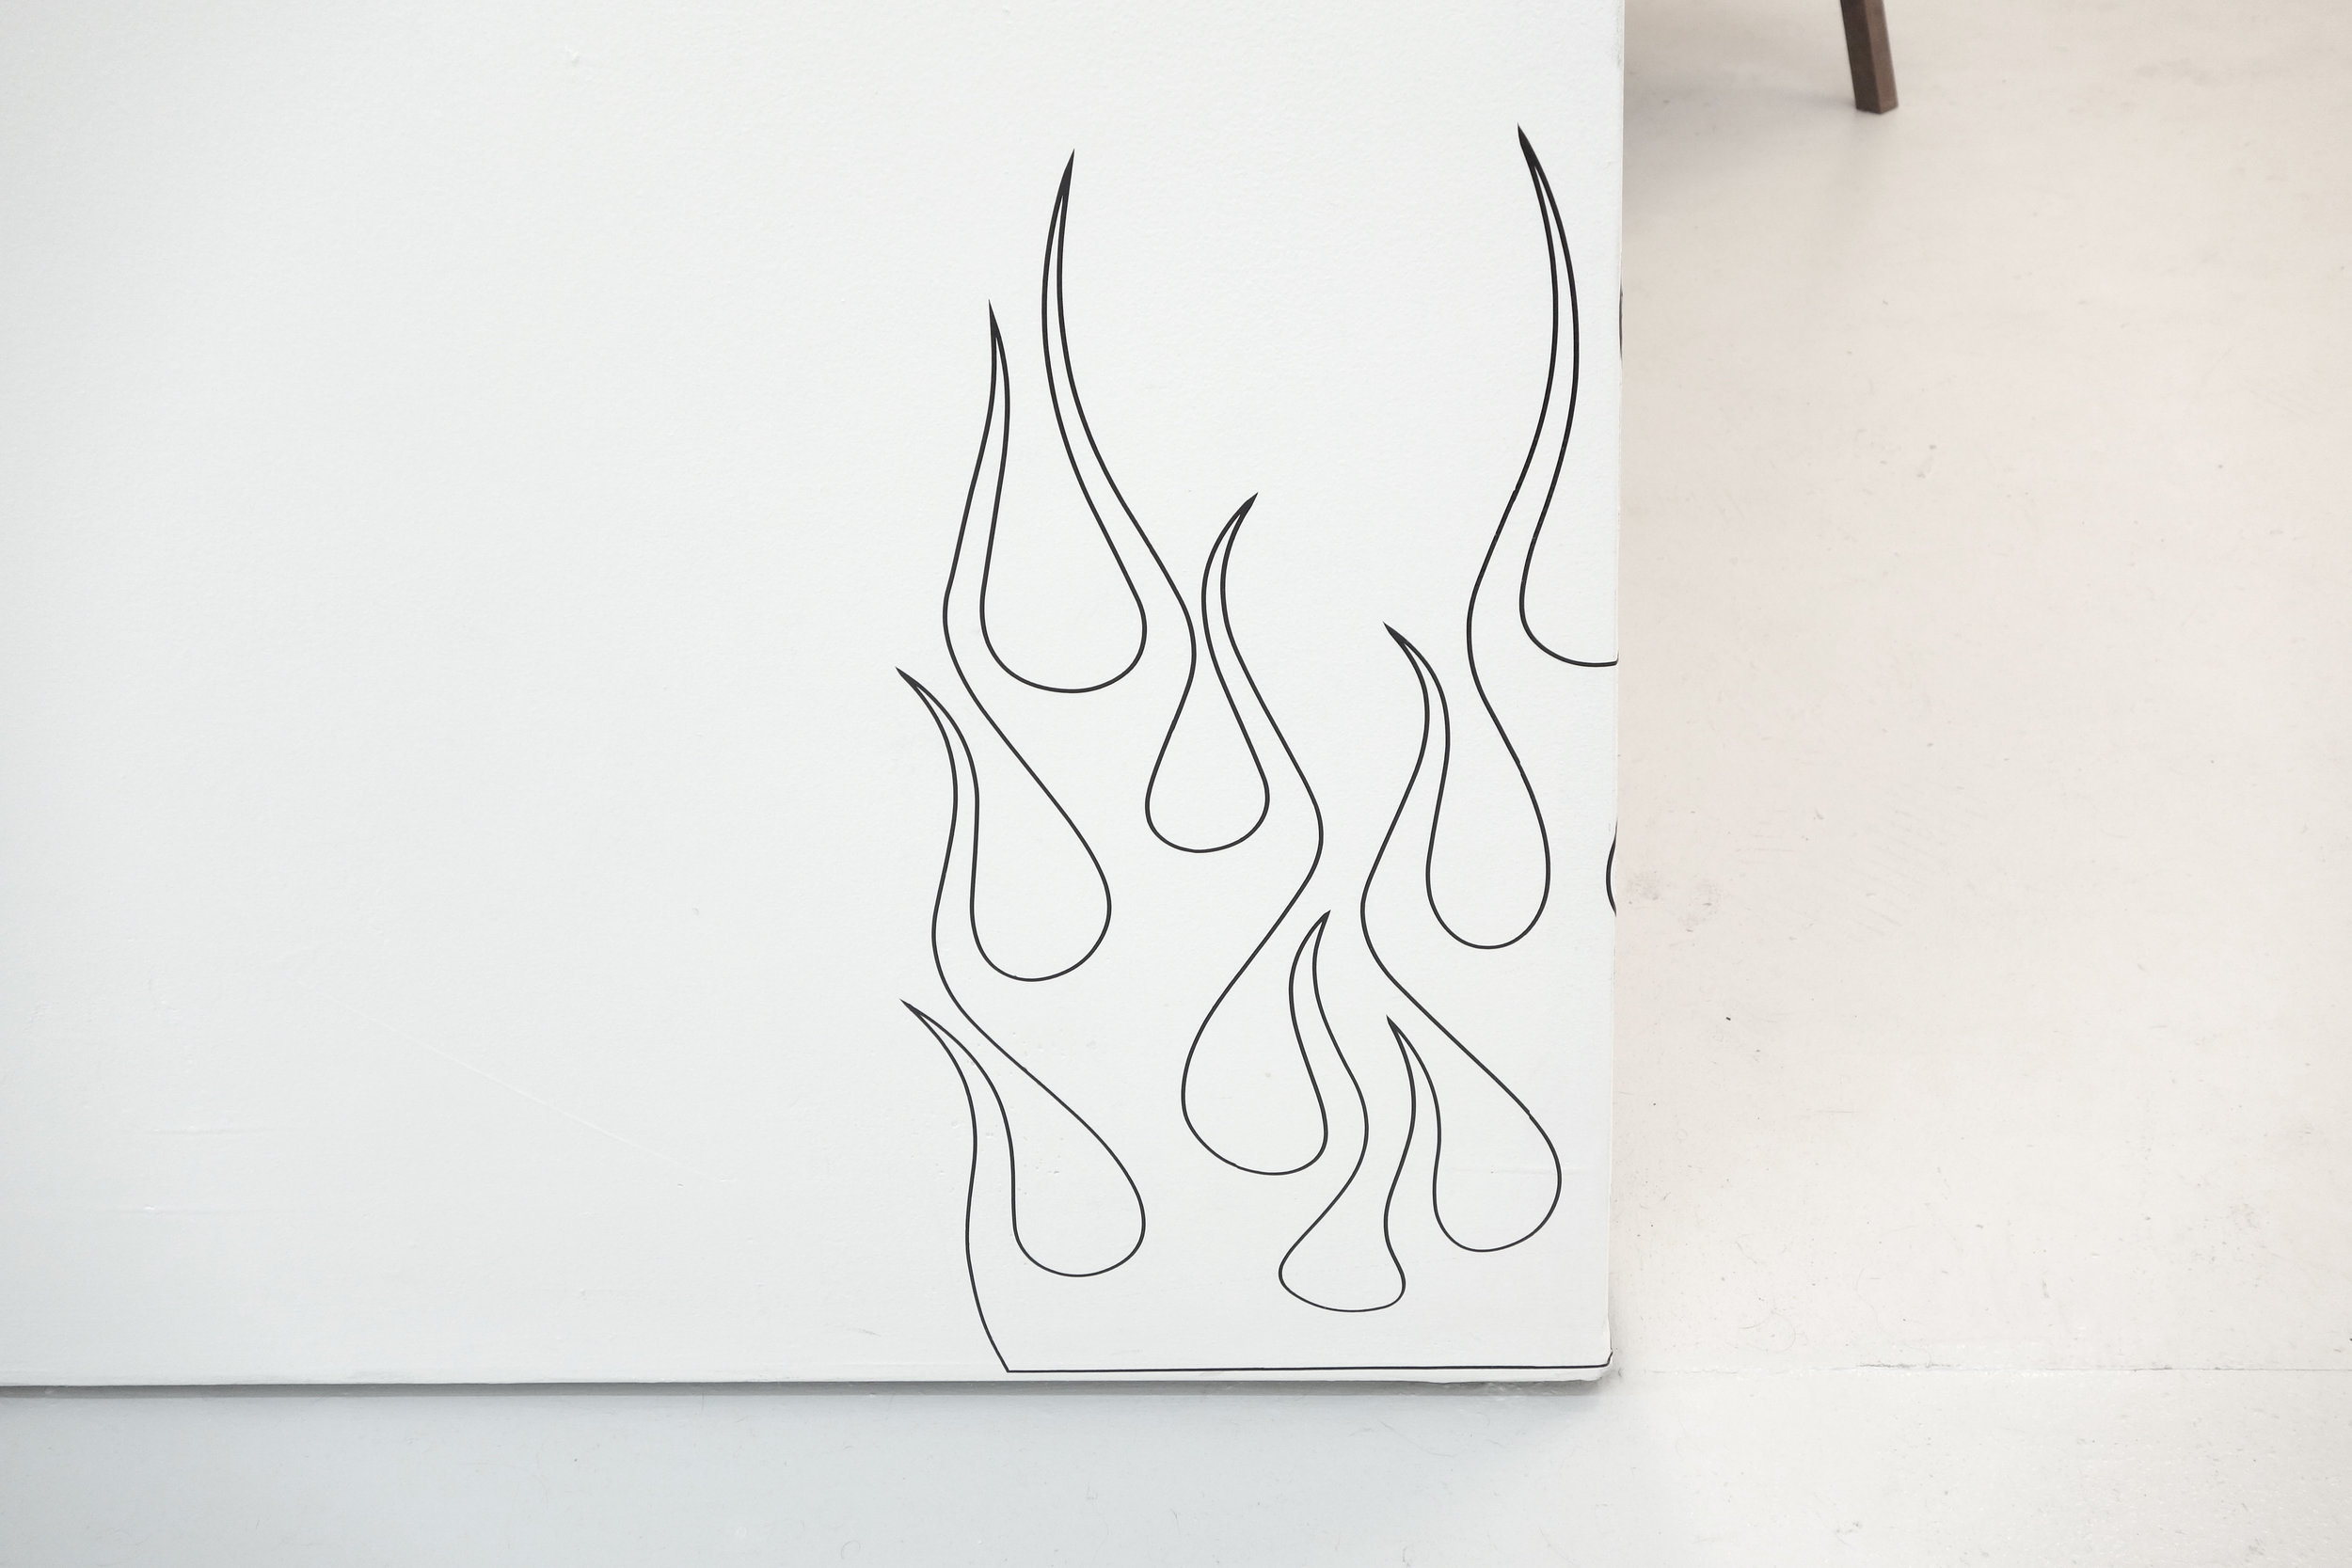 James Bouche  The Devil is in the Details , Vinyl Decal on Wall, Dimensions Variable, 2018, Open Edition